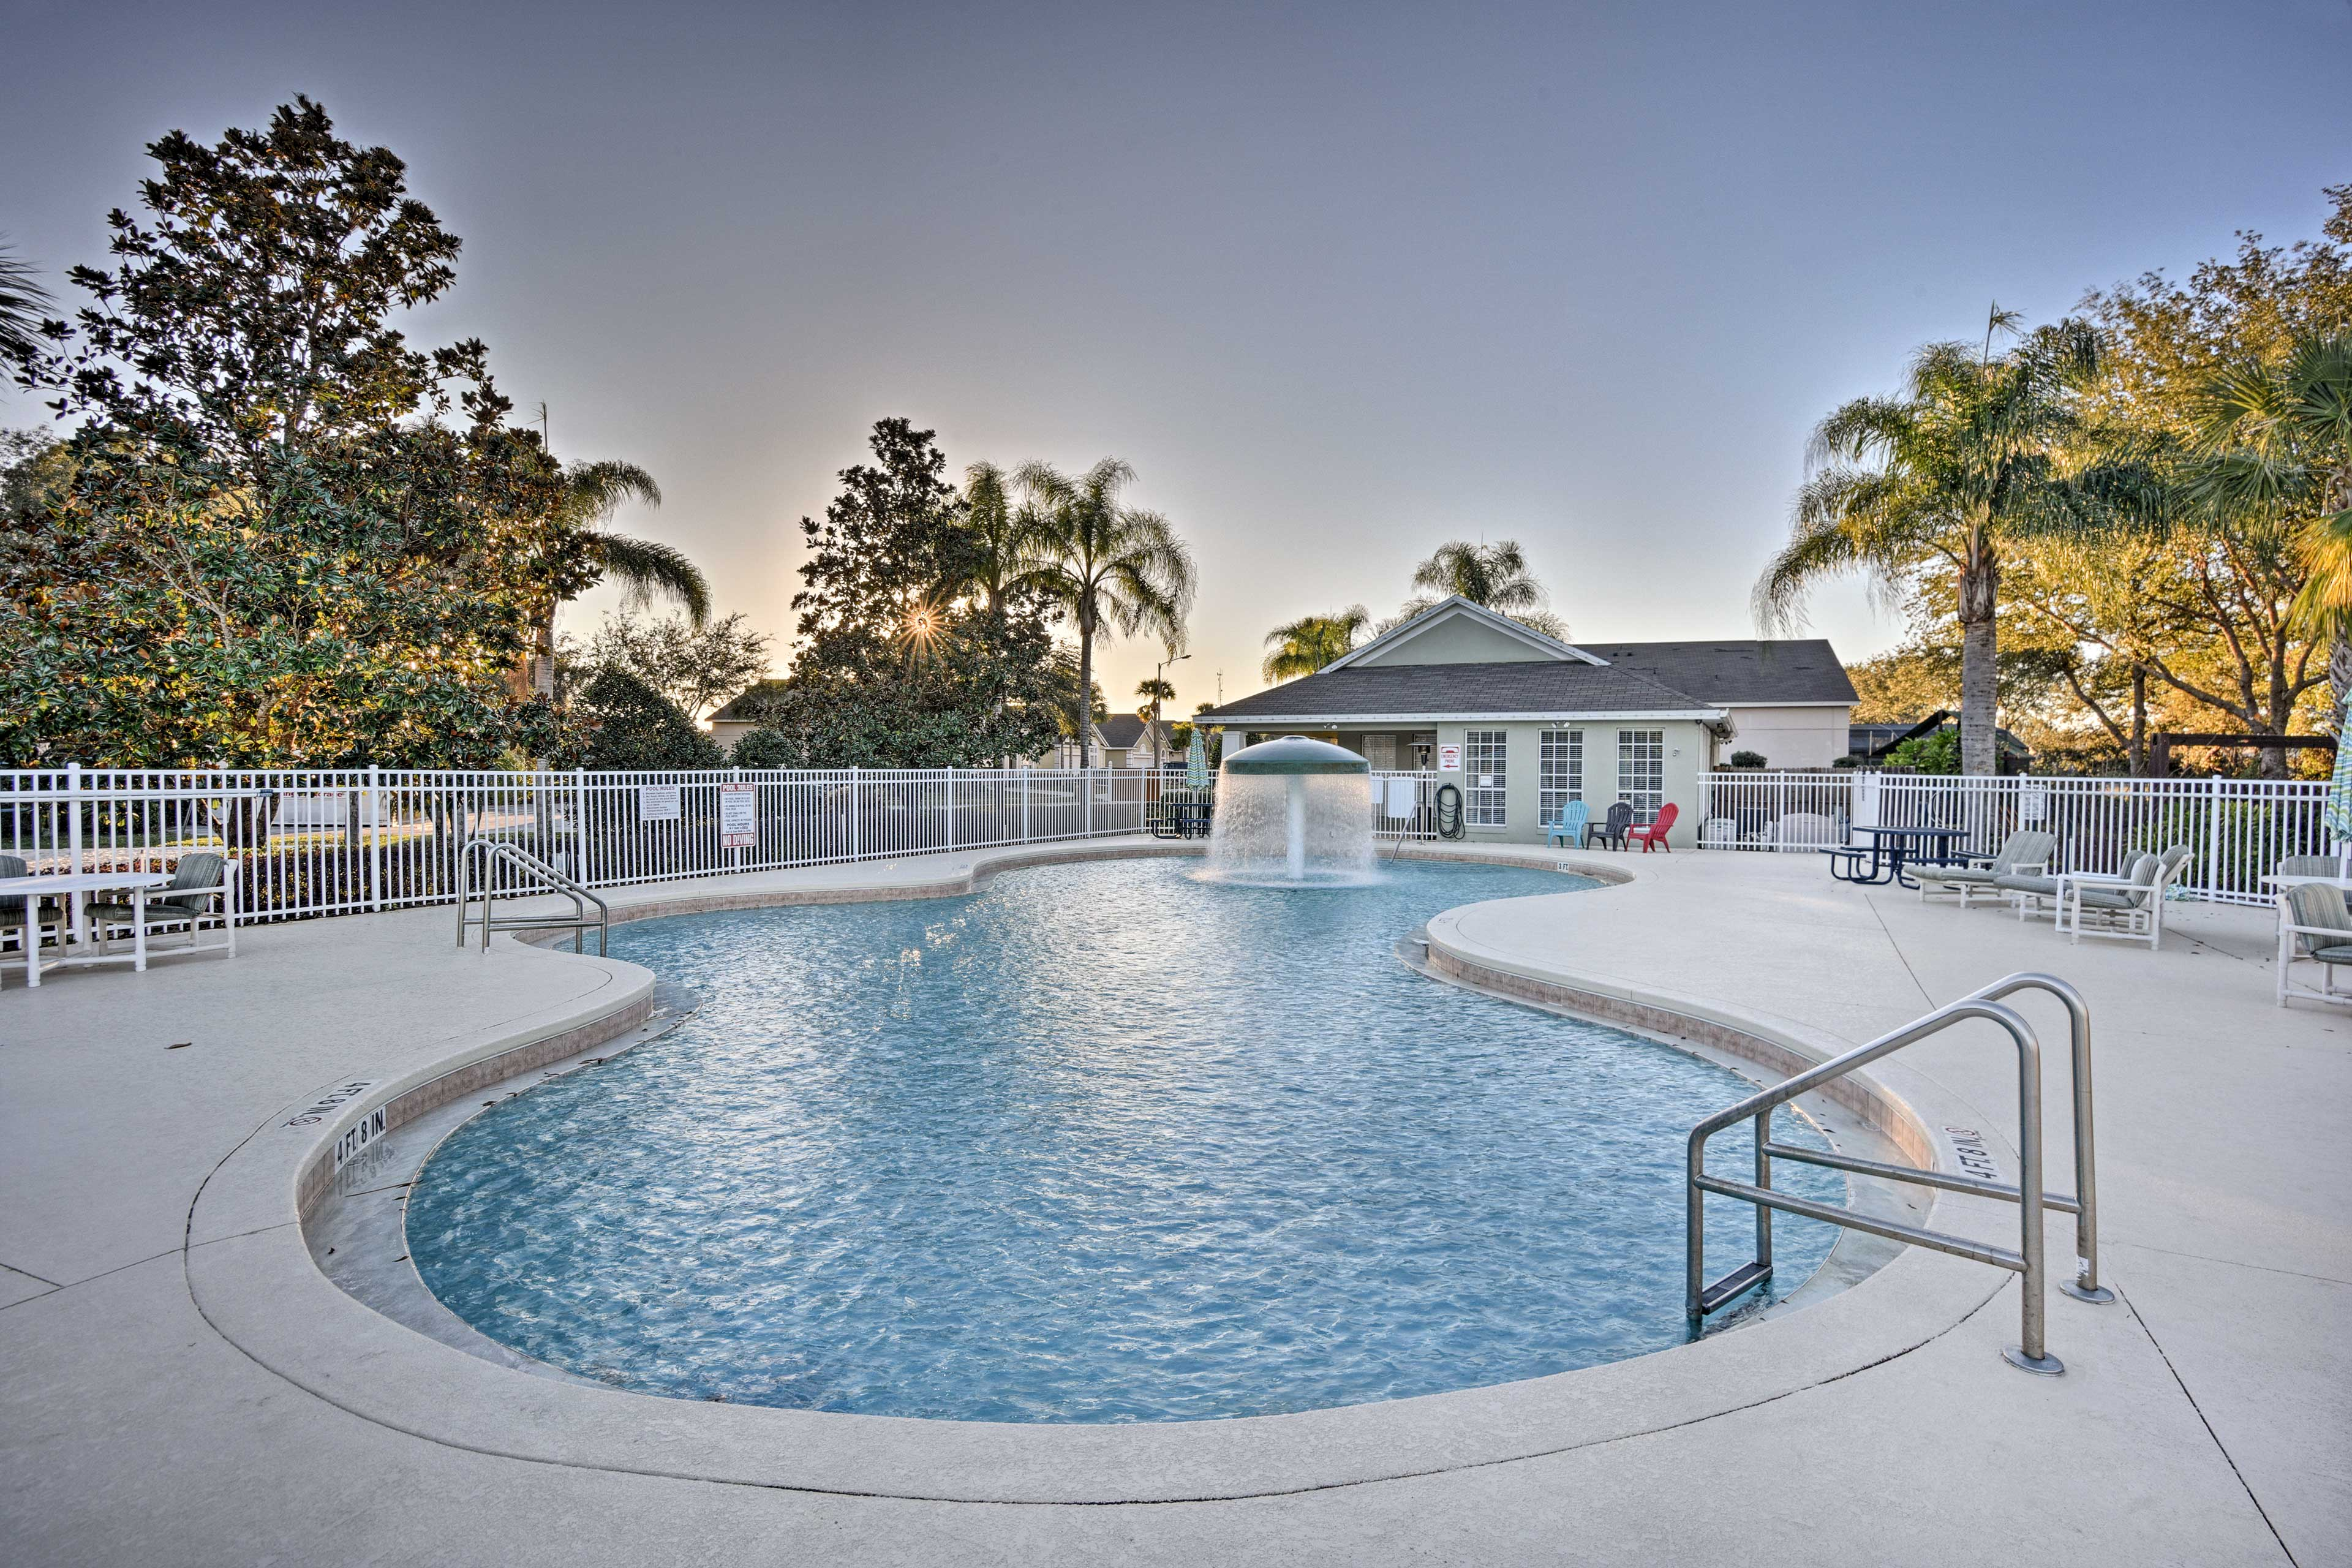 You'll also have access to this pristine swimming pool at the clubhouse.